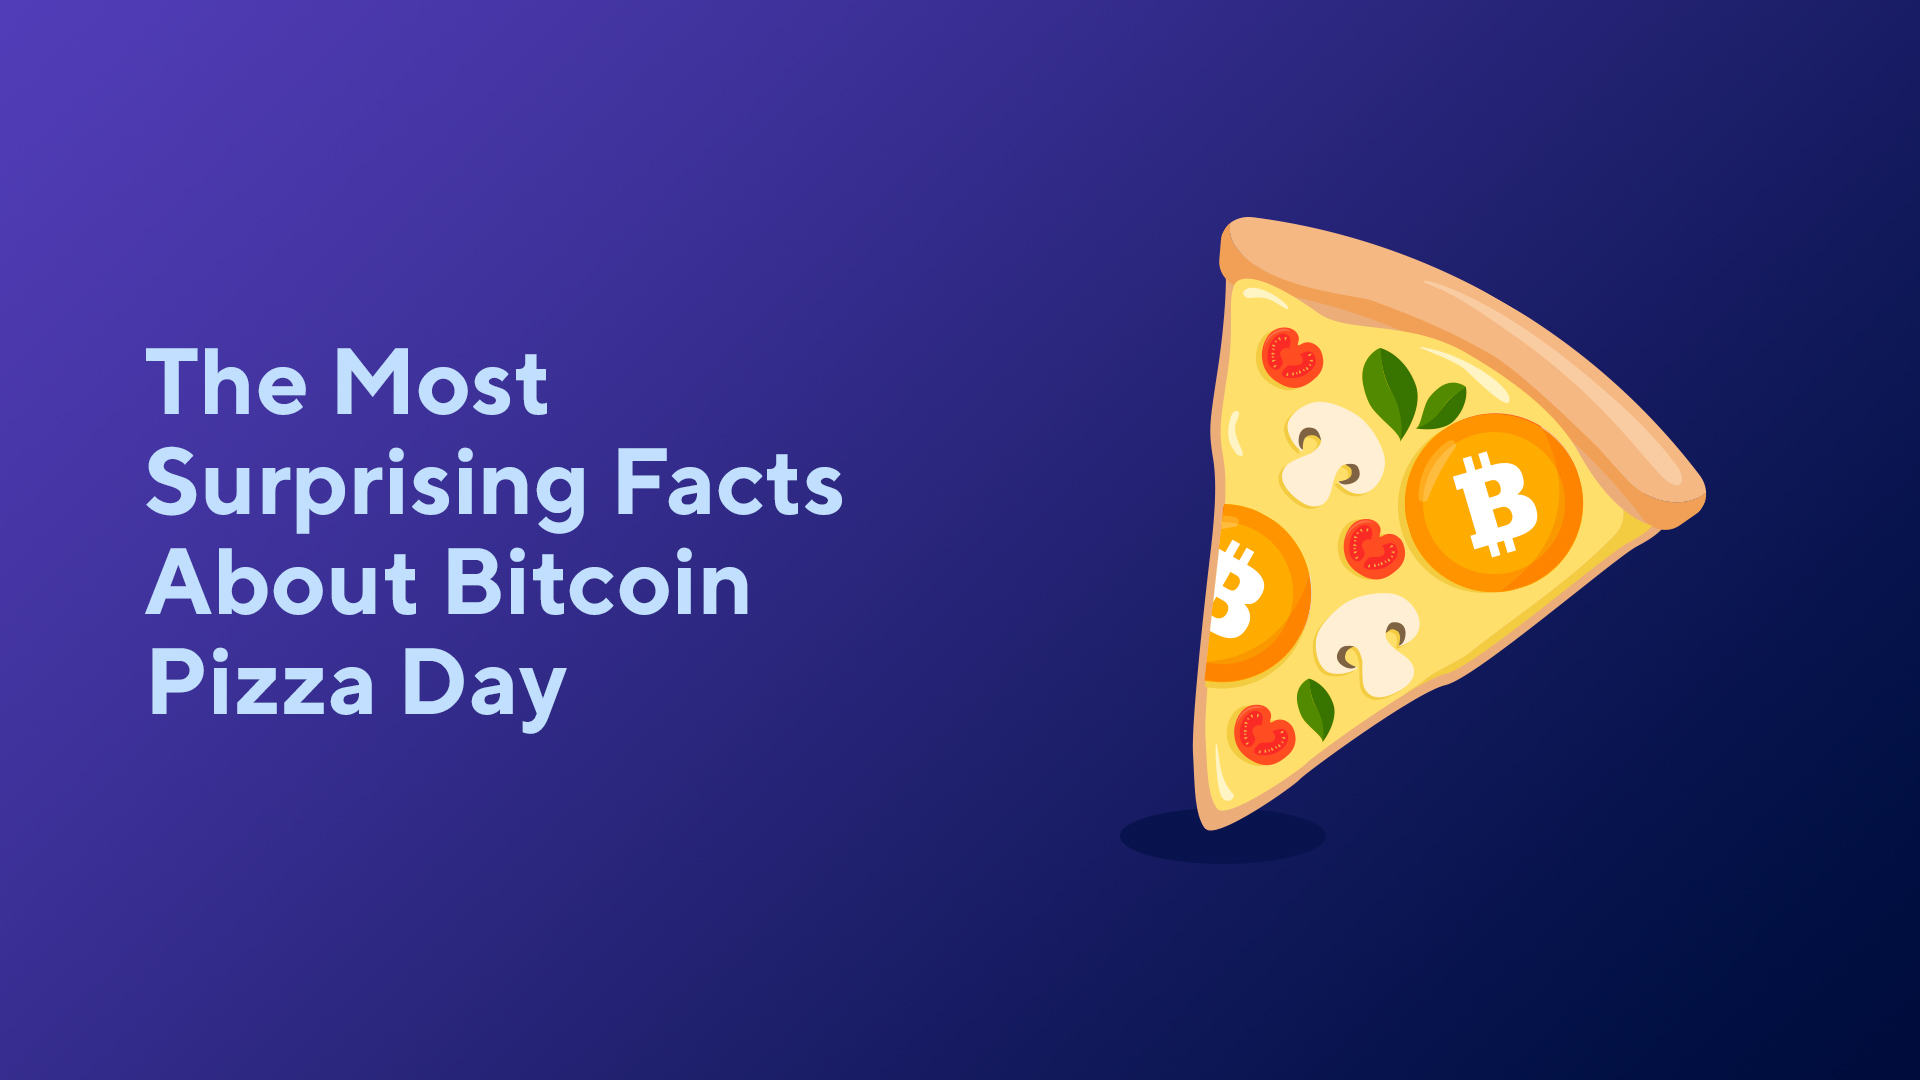 The Most Surprising Facts About Bitcoin Pizza Day